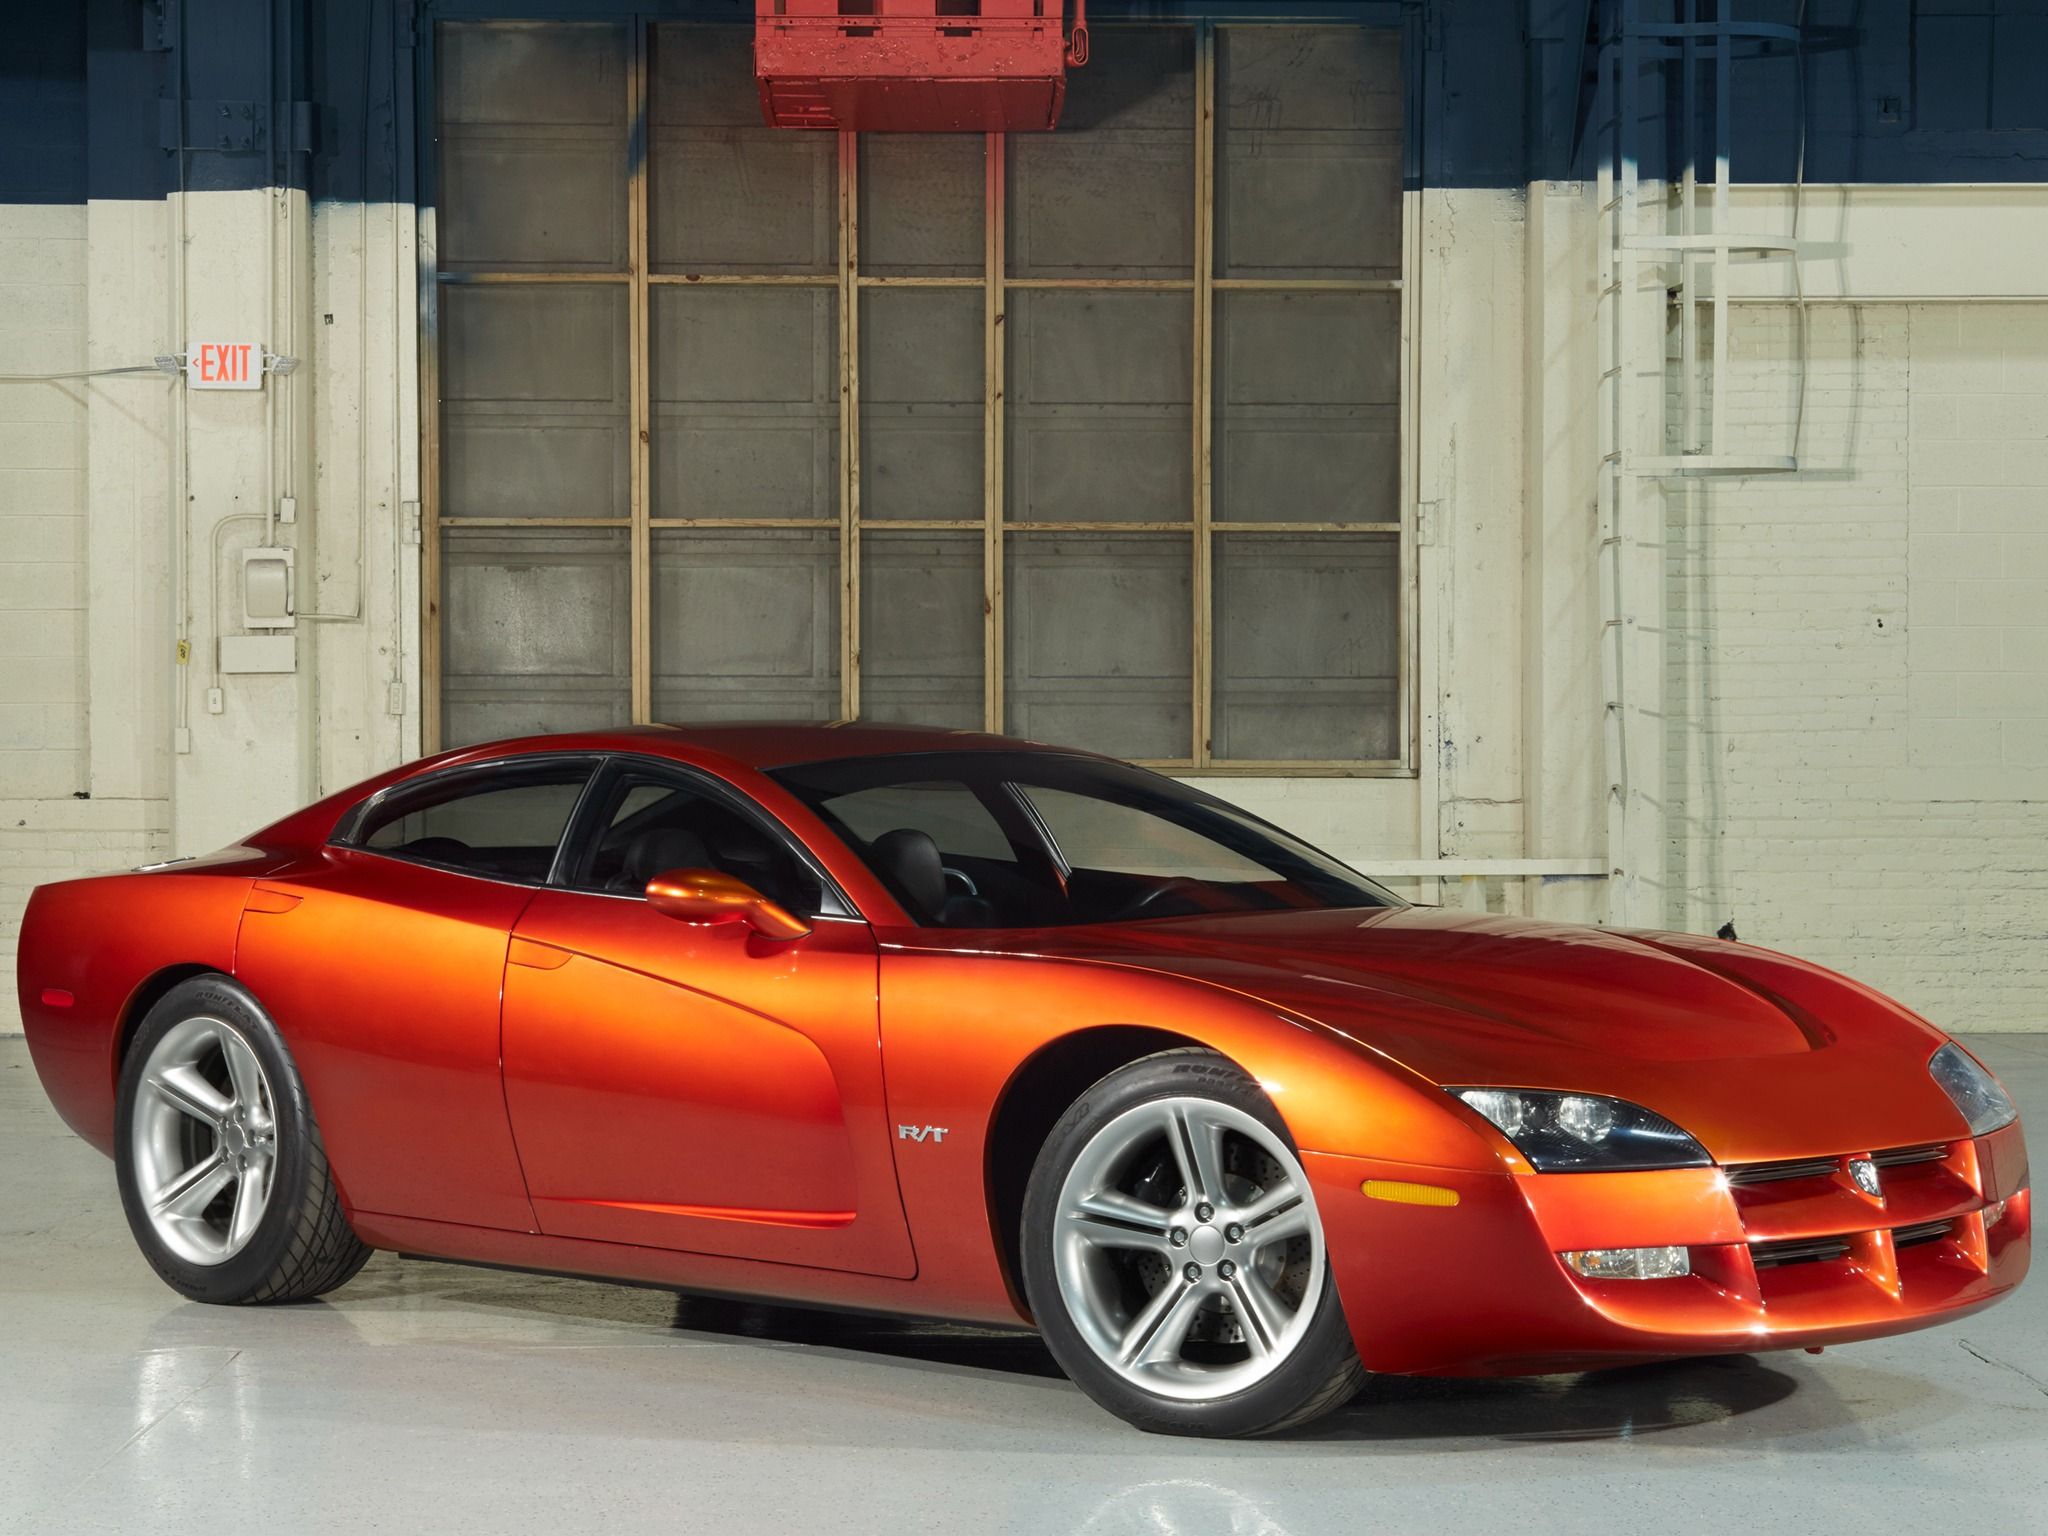 Charger Vs Challenger >> Dodge Charger R/T Concept (1999) – Old Concept Cars